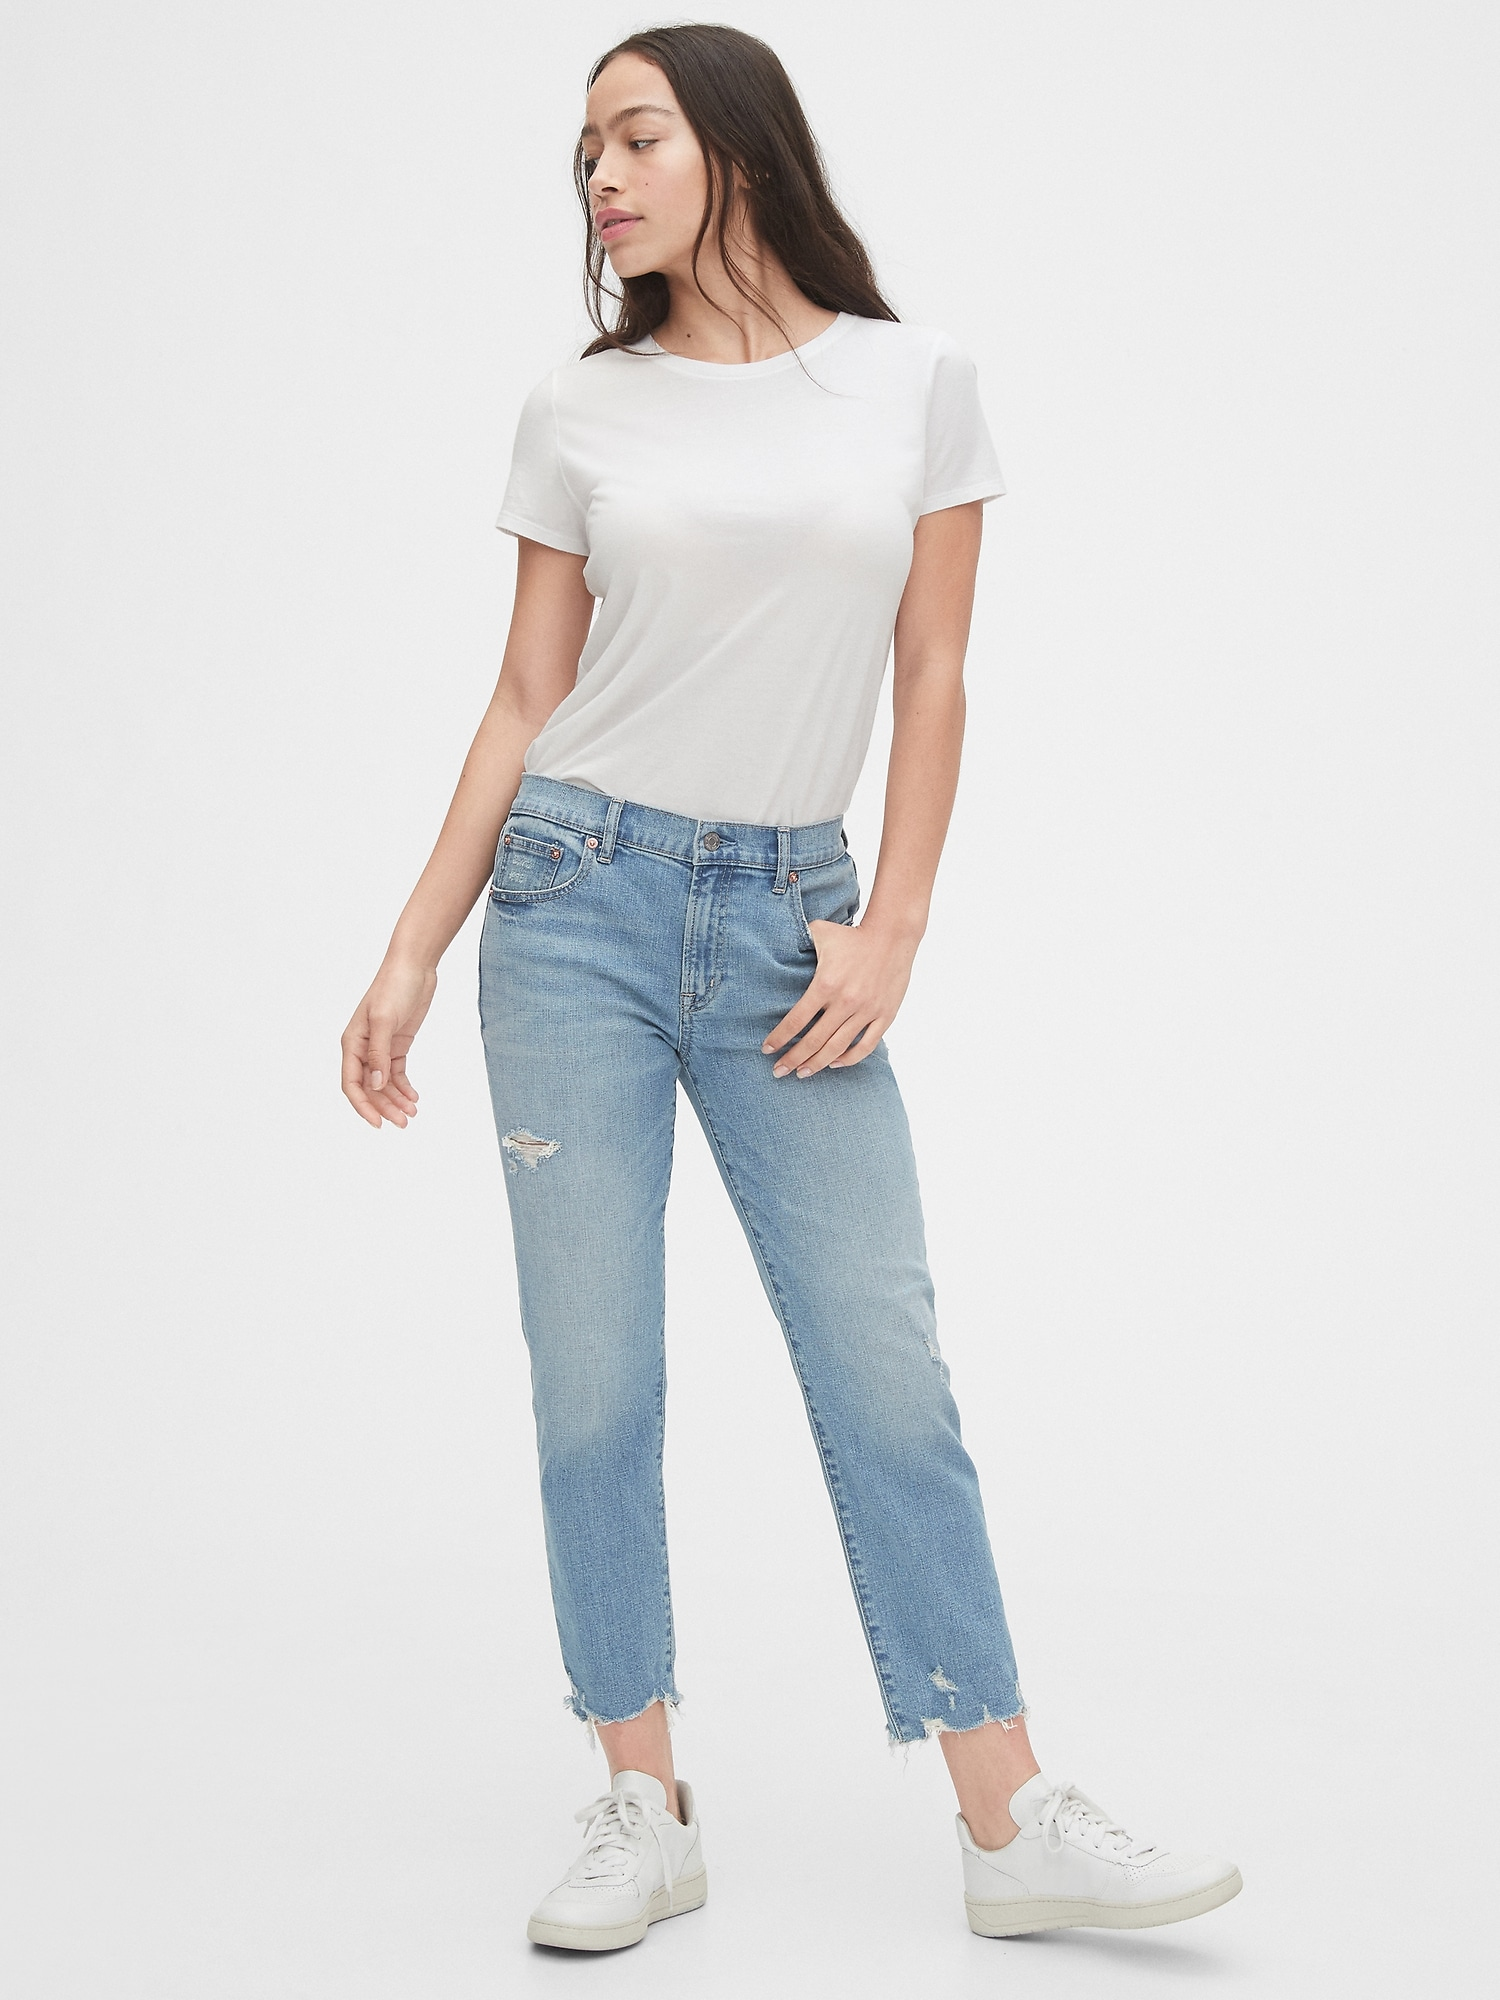 how to wear girlfriend jeans in gorgeously stylish new ways herstylecode How to Wear Girlfriend Jeans in Gorgeously Stylish New Ways